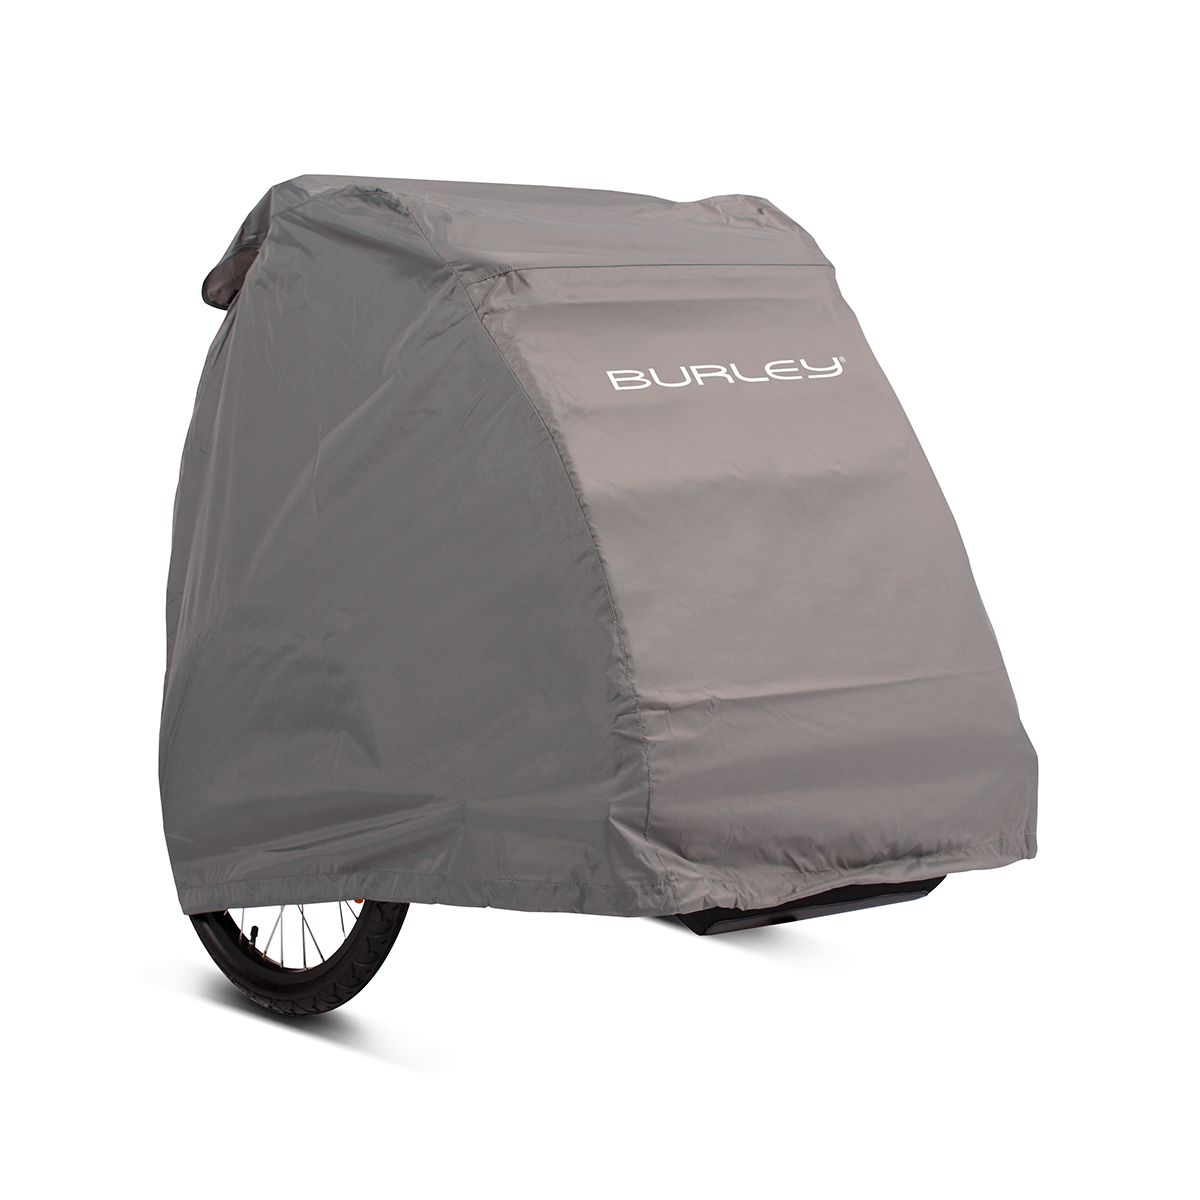 Burley TRAILER STORAGE COVER | bike_trailers_component